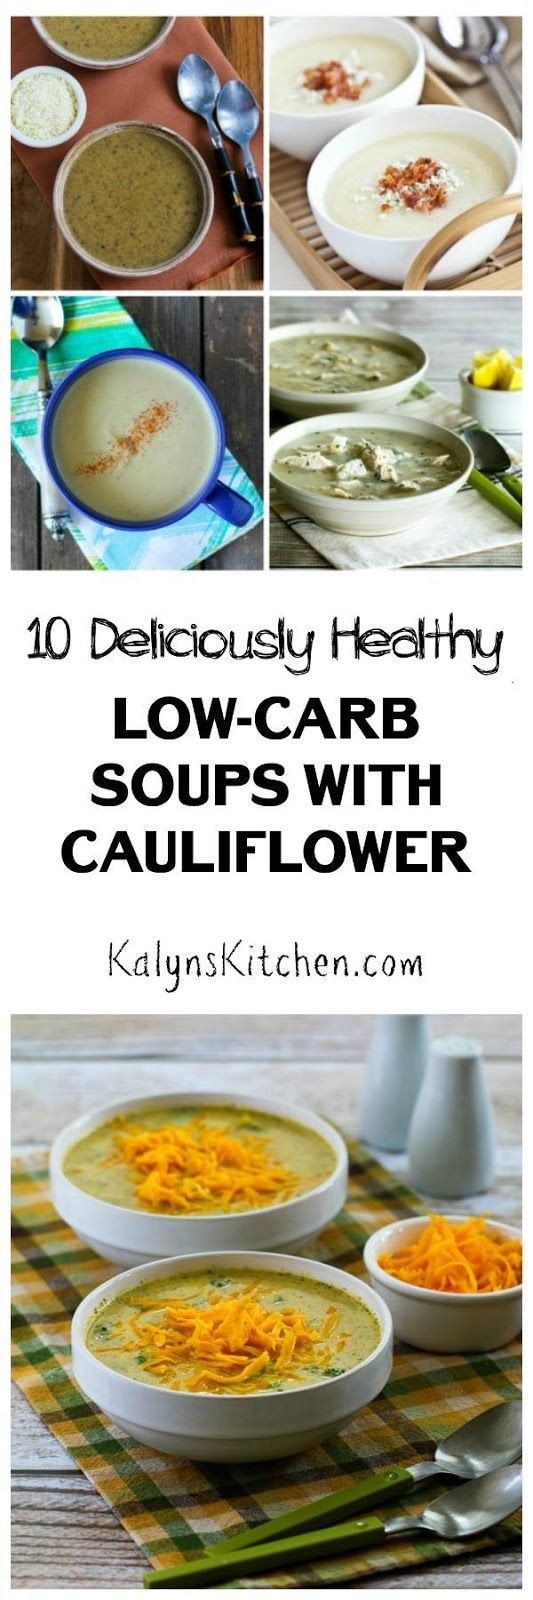 Healthy Low Carb soups top 20 10 Deliciously Healthy Low Carb soups with Cauliflower